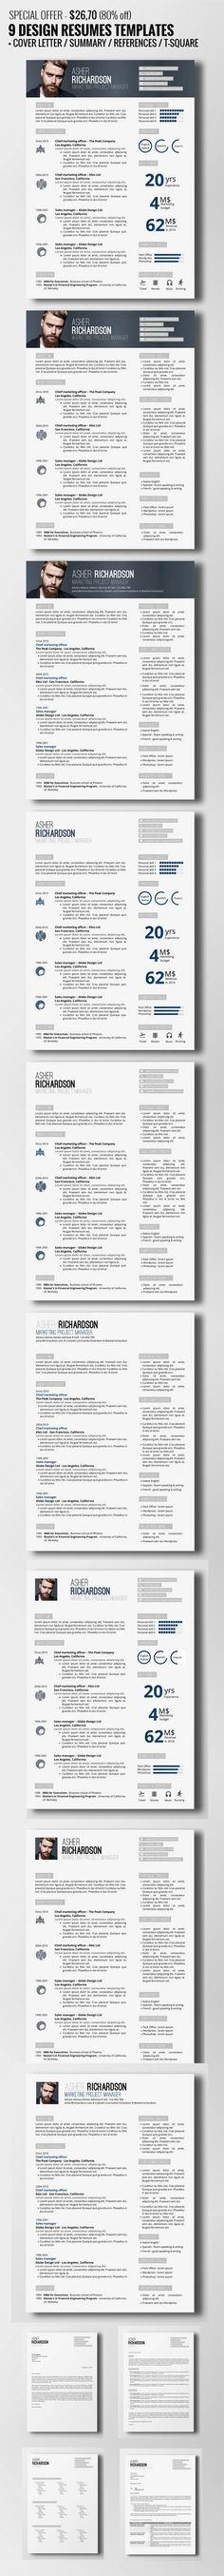 435 best Resume images on Pinterest Resume design, Design resume - ses resume sample